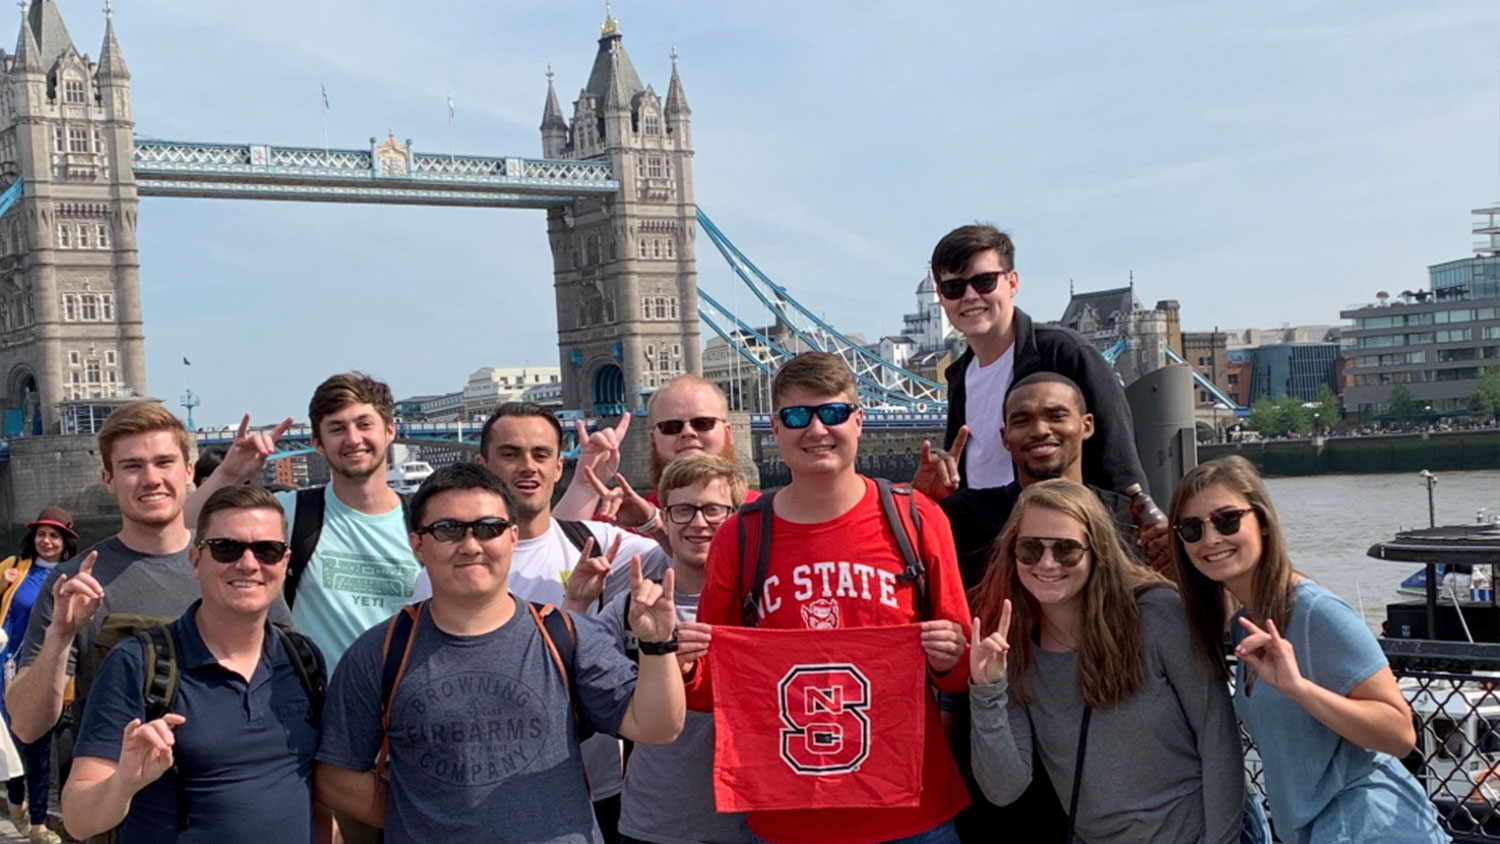 Students Studying Together Abroad - Study Abroad - Parks Recreation and Tourism Management NC State